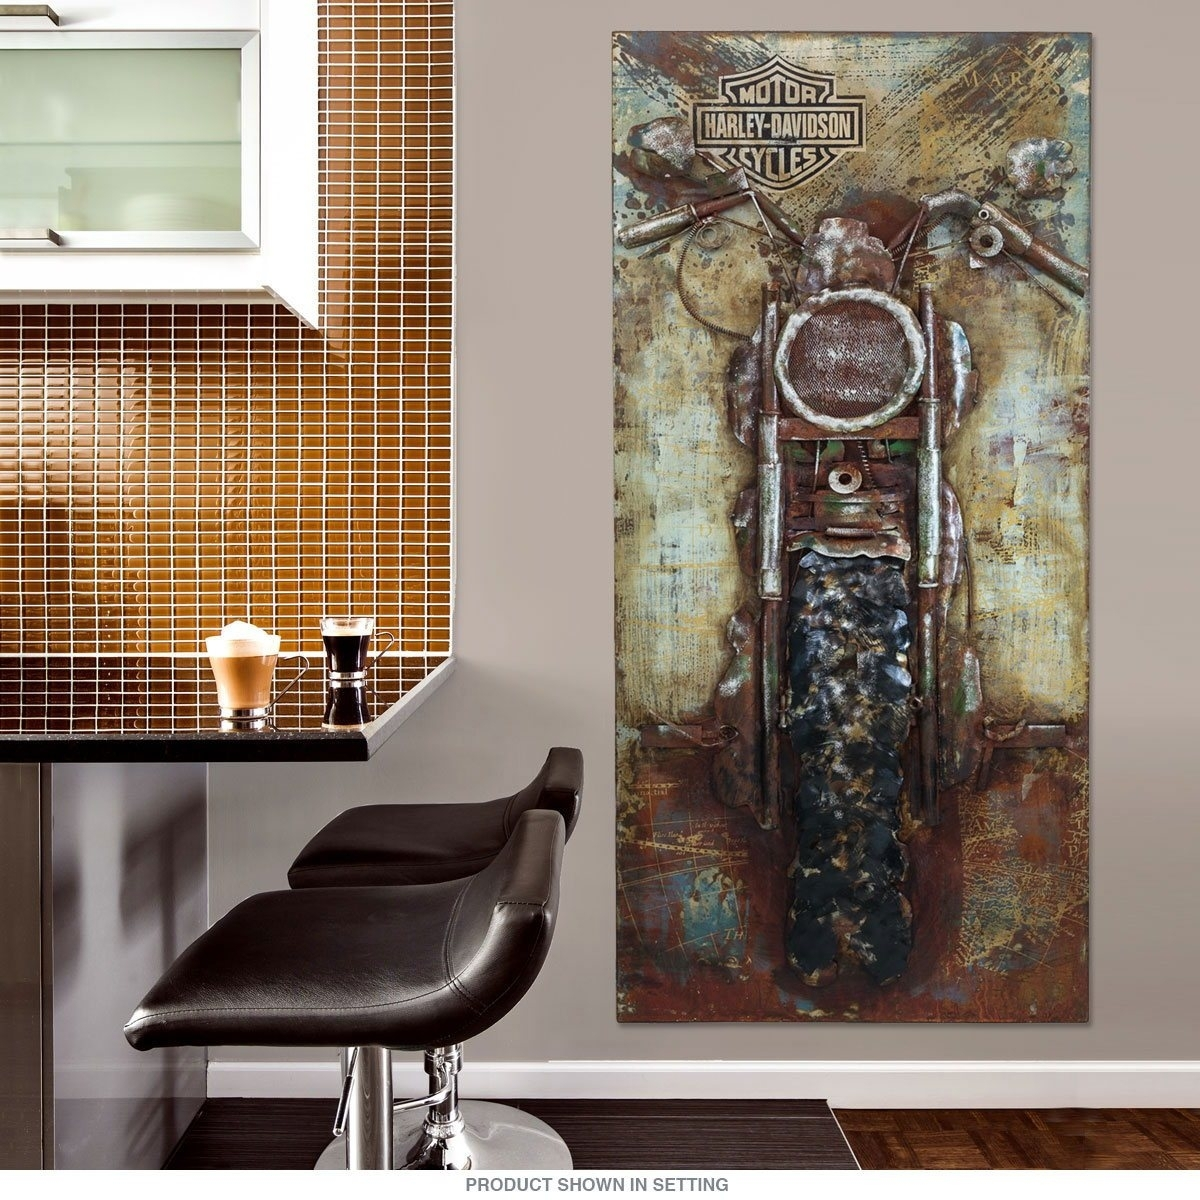 Living Room Outstanding Harley Davidson Image Ideas Bike Repurposed Throughout Most Popular Harley Davidson Wall Art (View 19 of 20)